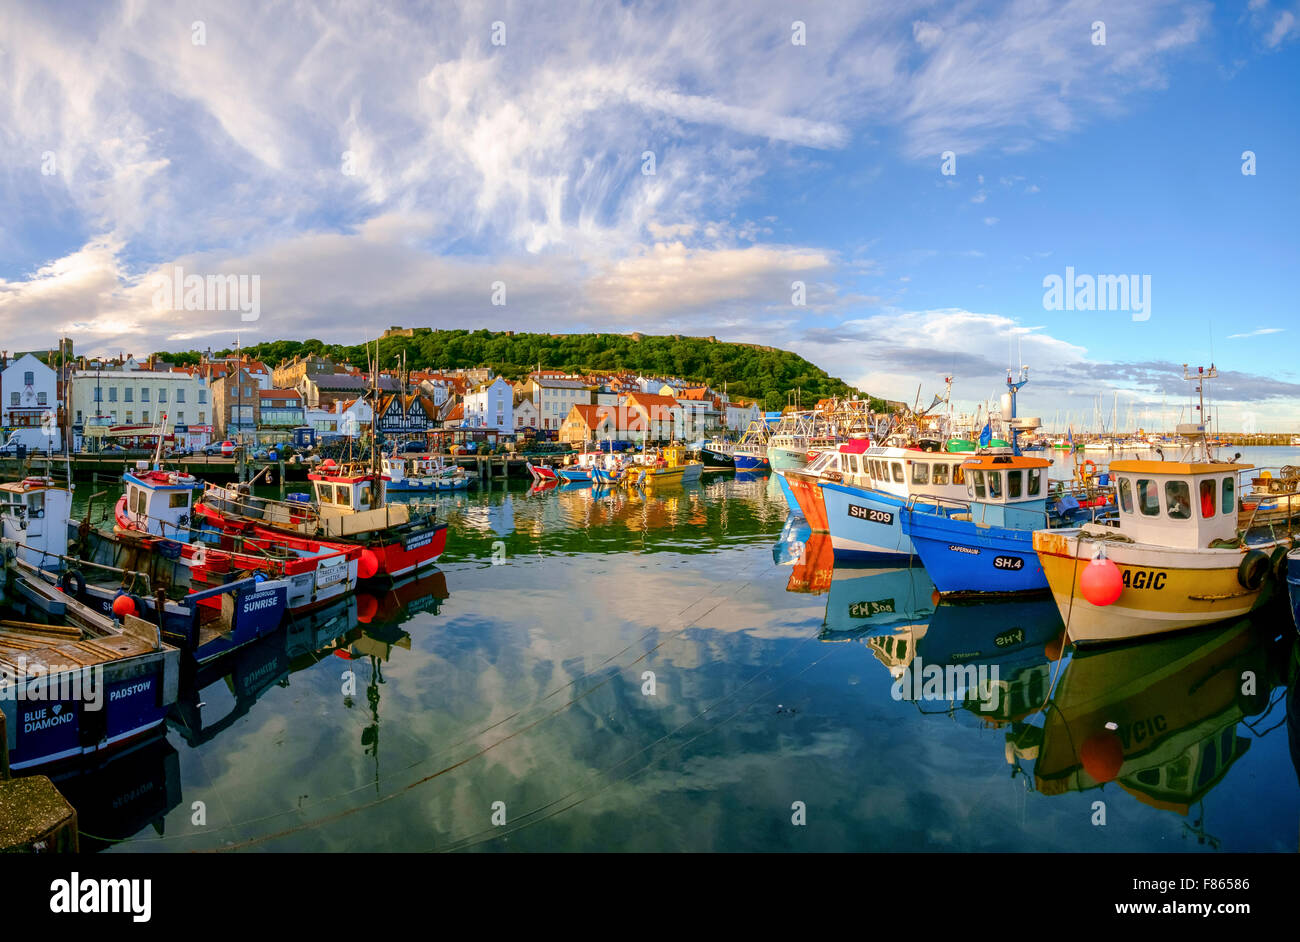 sunset at Scarborough harbor with boats and views to Scarborough castle - Stock Image